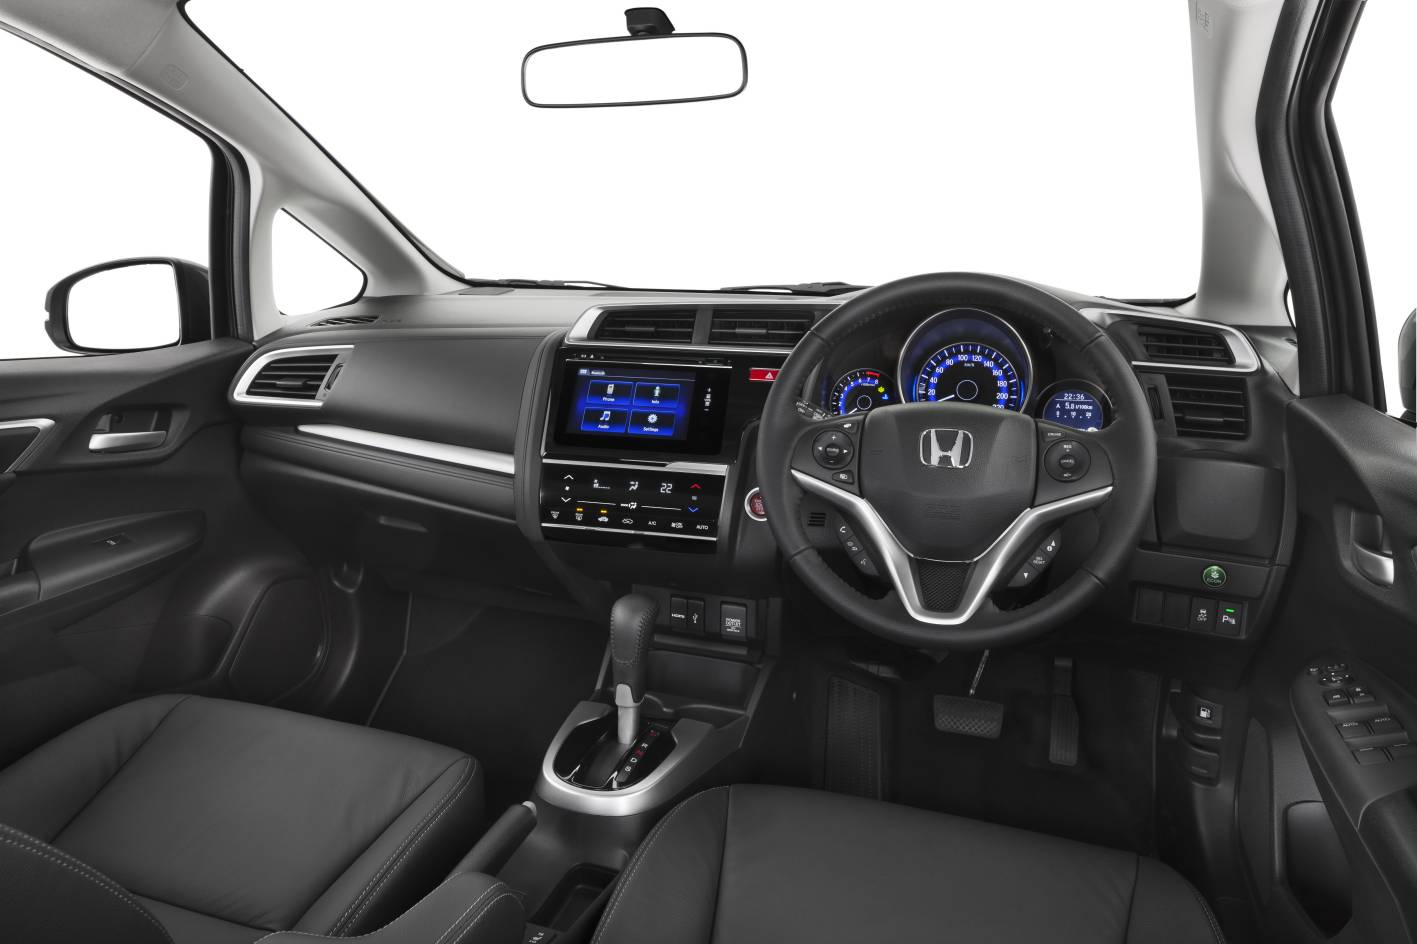 astounding-design-of-the-black-seats-ideas-with-blak-dash-added-with-black-steering-wheels-as-the-honda-jazz-2015-interior